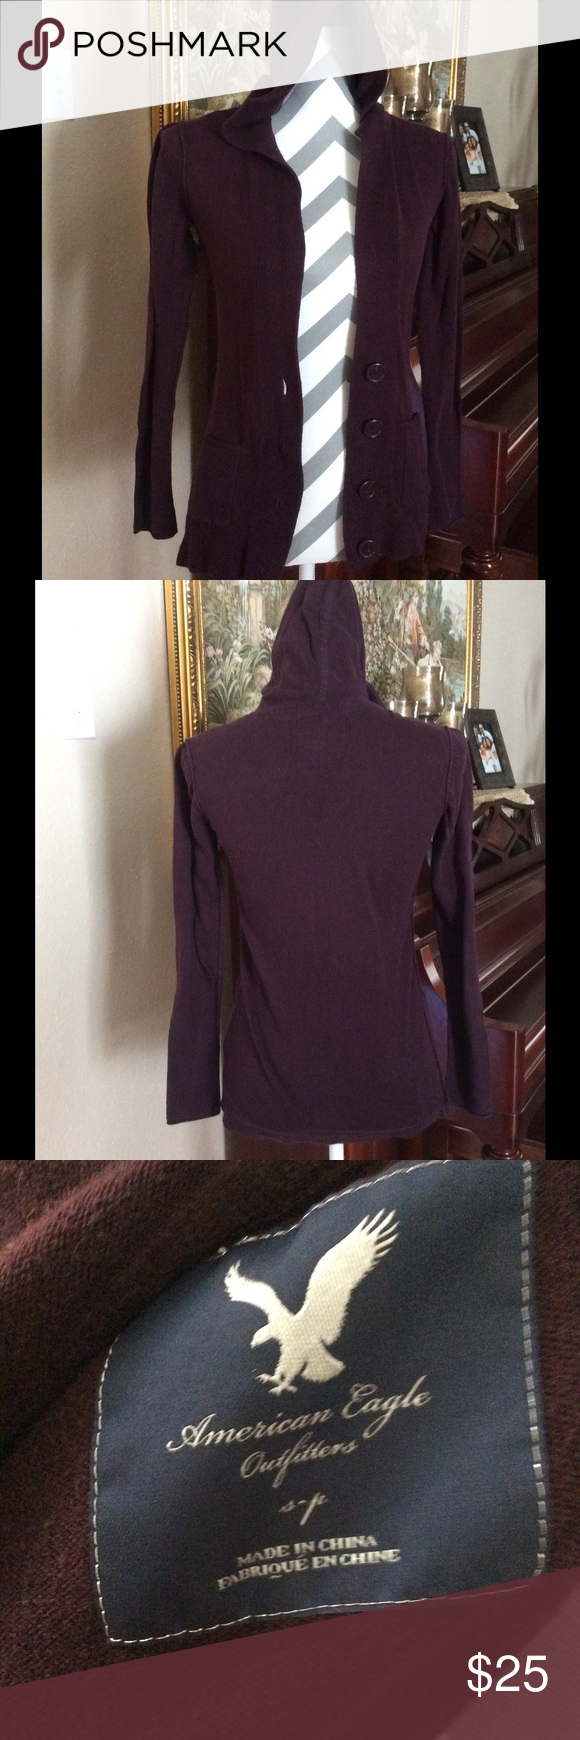 American eagle cardigan with hood Burgundy  cardigan with hood, two pockets button down. Great condition American Eagle Outfitters Sweaters Cardigans